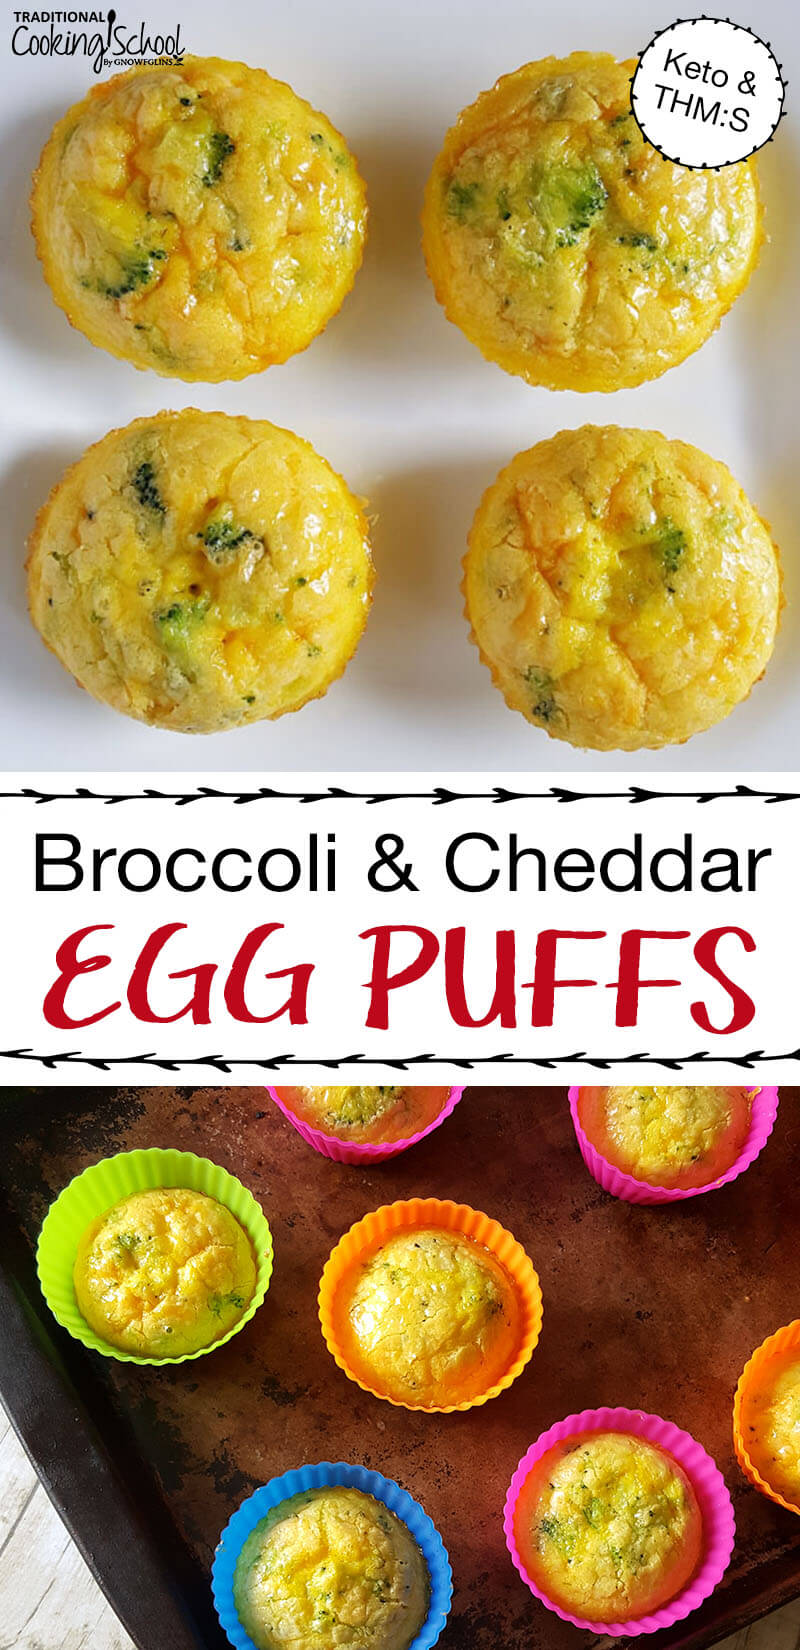 "Pinterest pin with two images of broccoli cheddar egg puffs. One picture has four muffins sitting on a white counter, the other has a bunch of muffins in colorful silicone muffin cups. Text overlay says, ""Broccoli & Cheddar Egg Puffs - Keto & THM:S"""